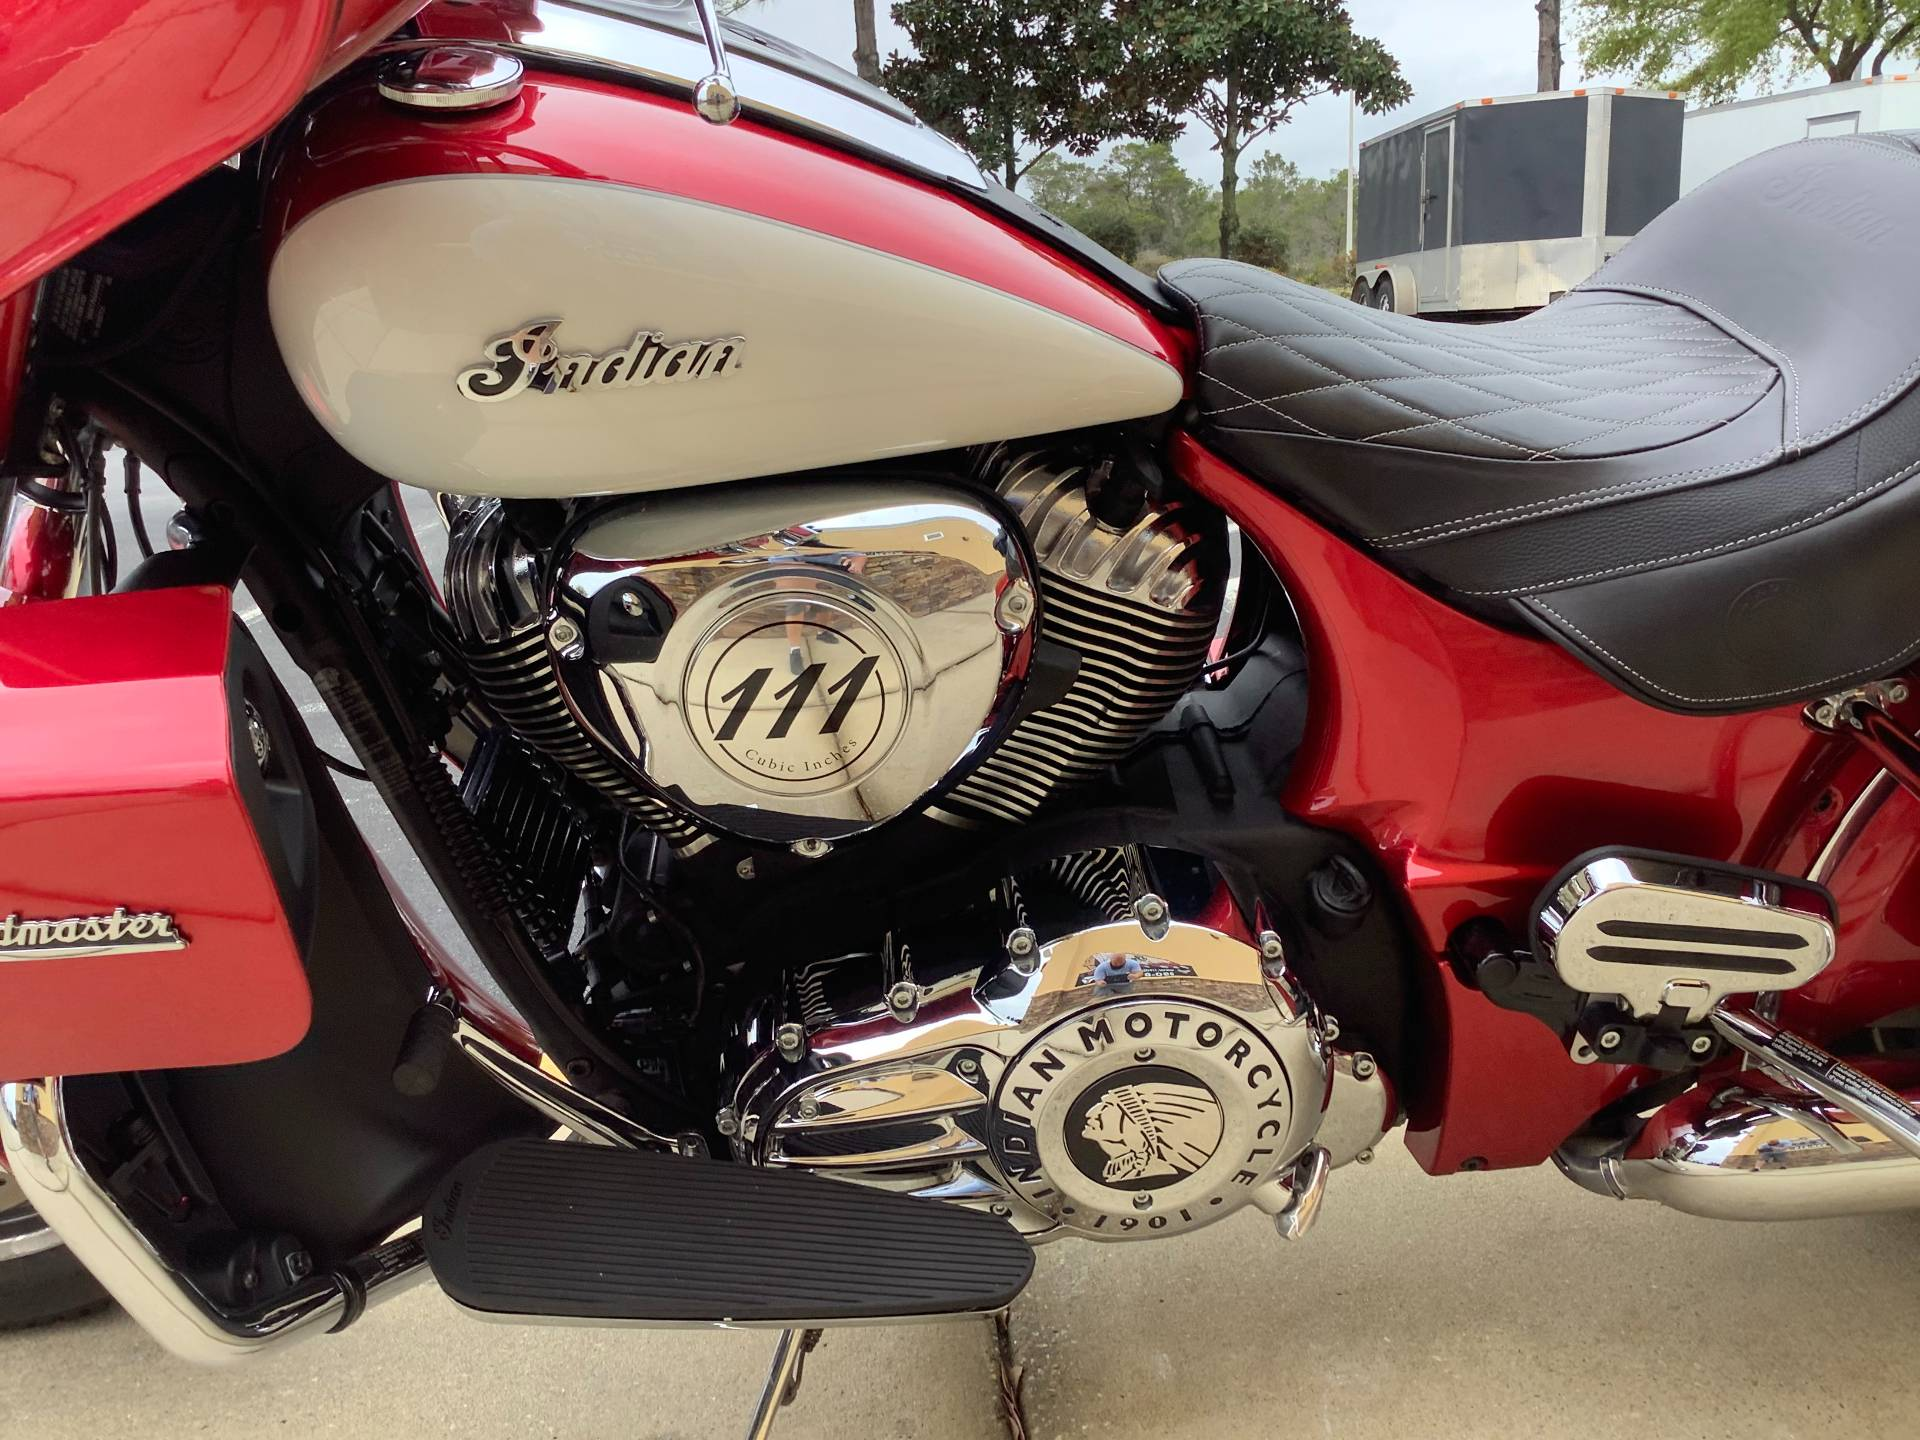 2019 Indian ROADMASTER ICON SERIES in Panama City Beach, Florida - Photo 12